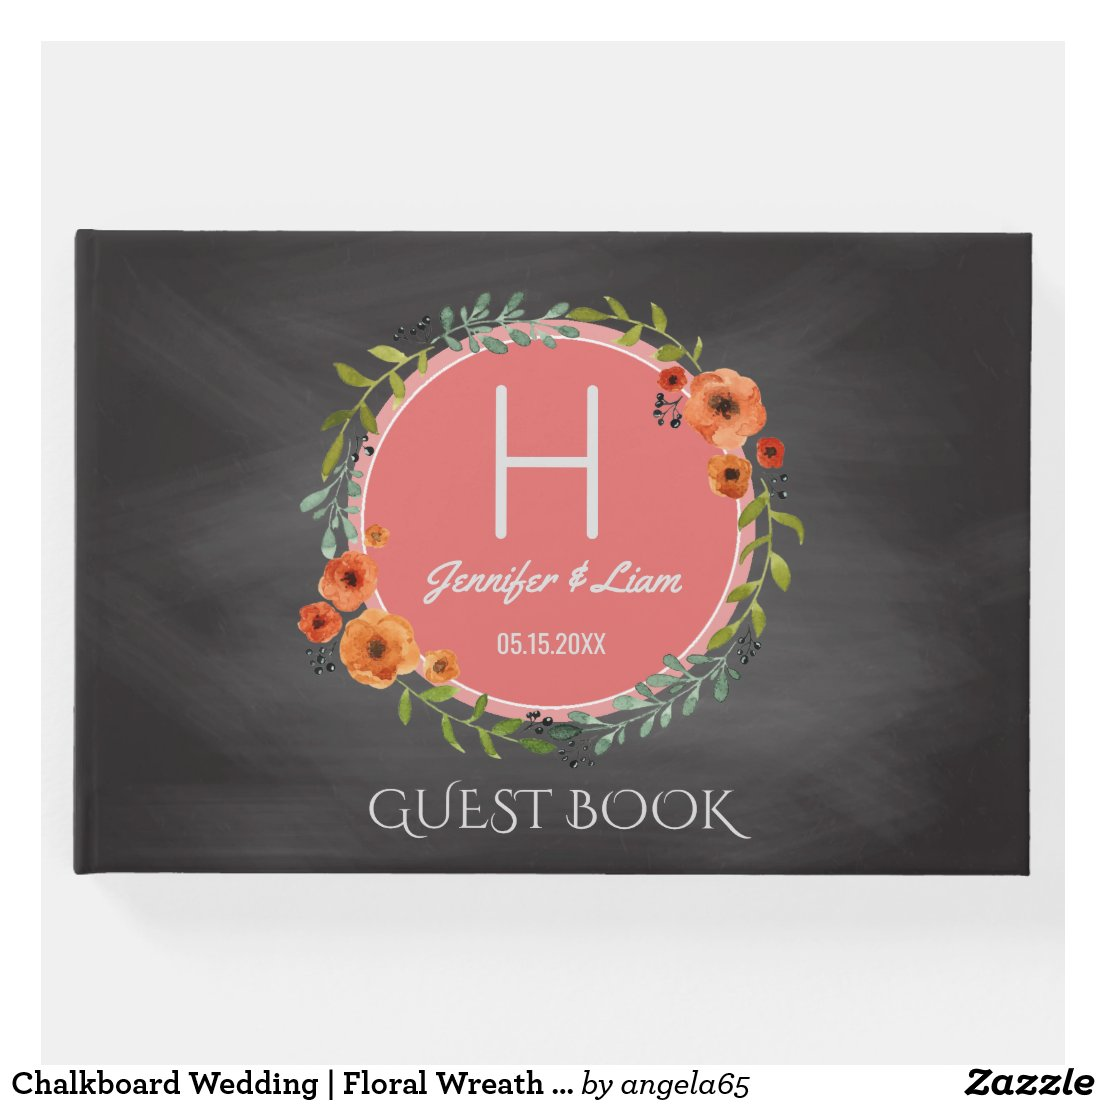 Chalkboard Wedding | Floral Wreath Boho Monogram Guest Book